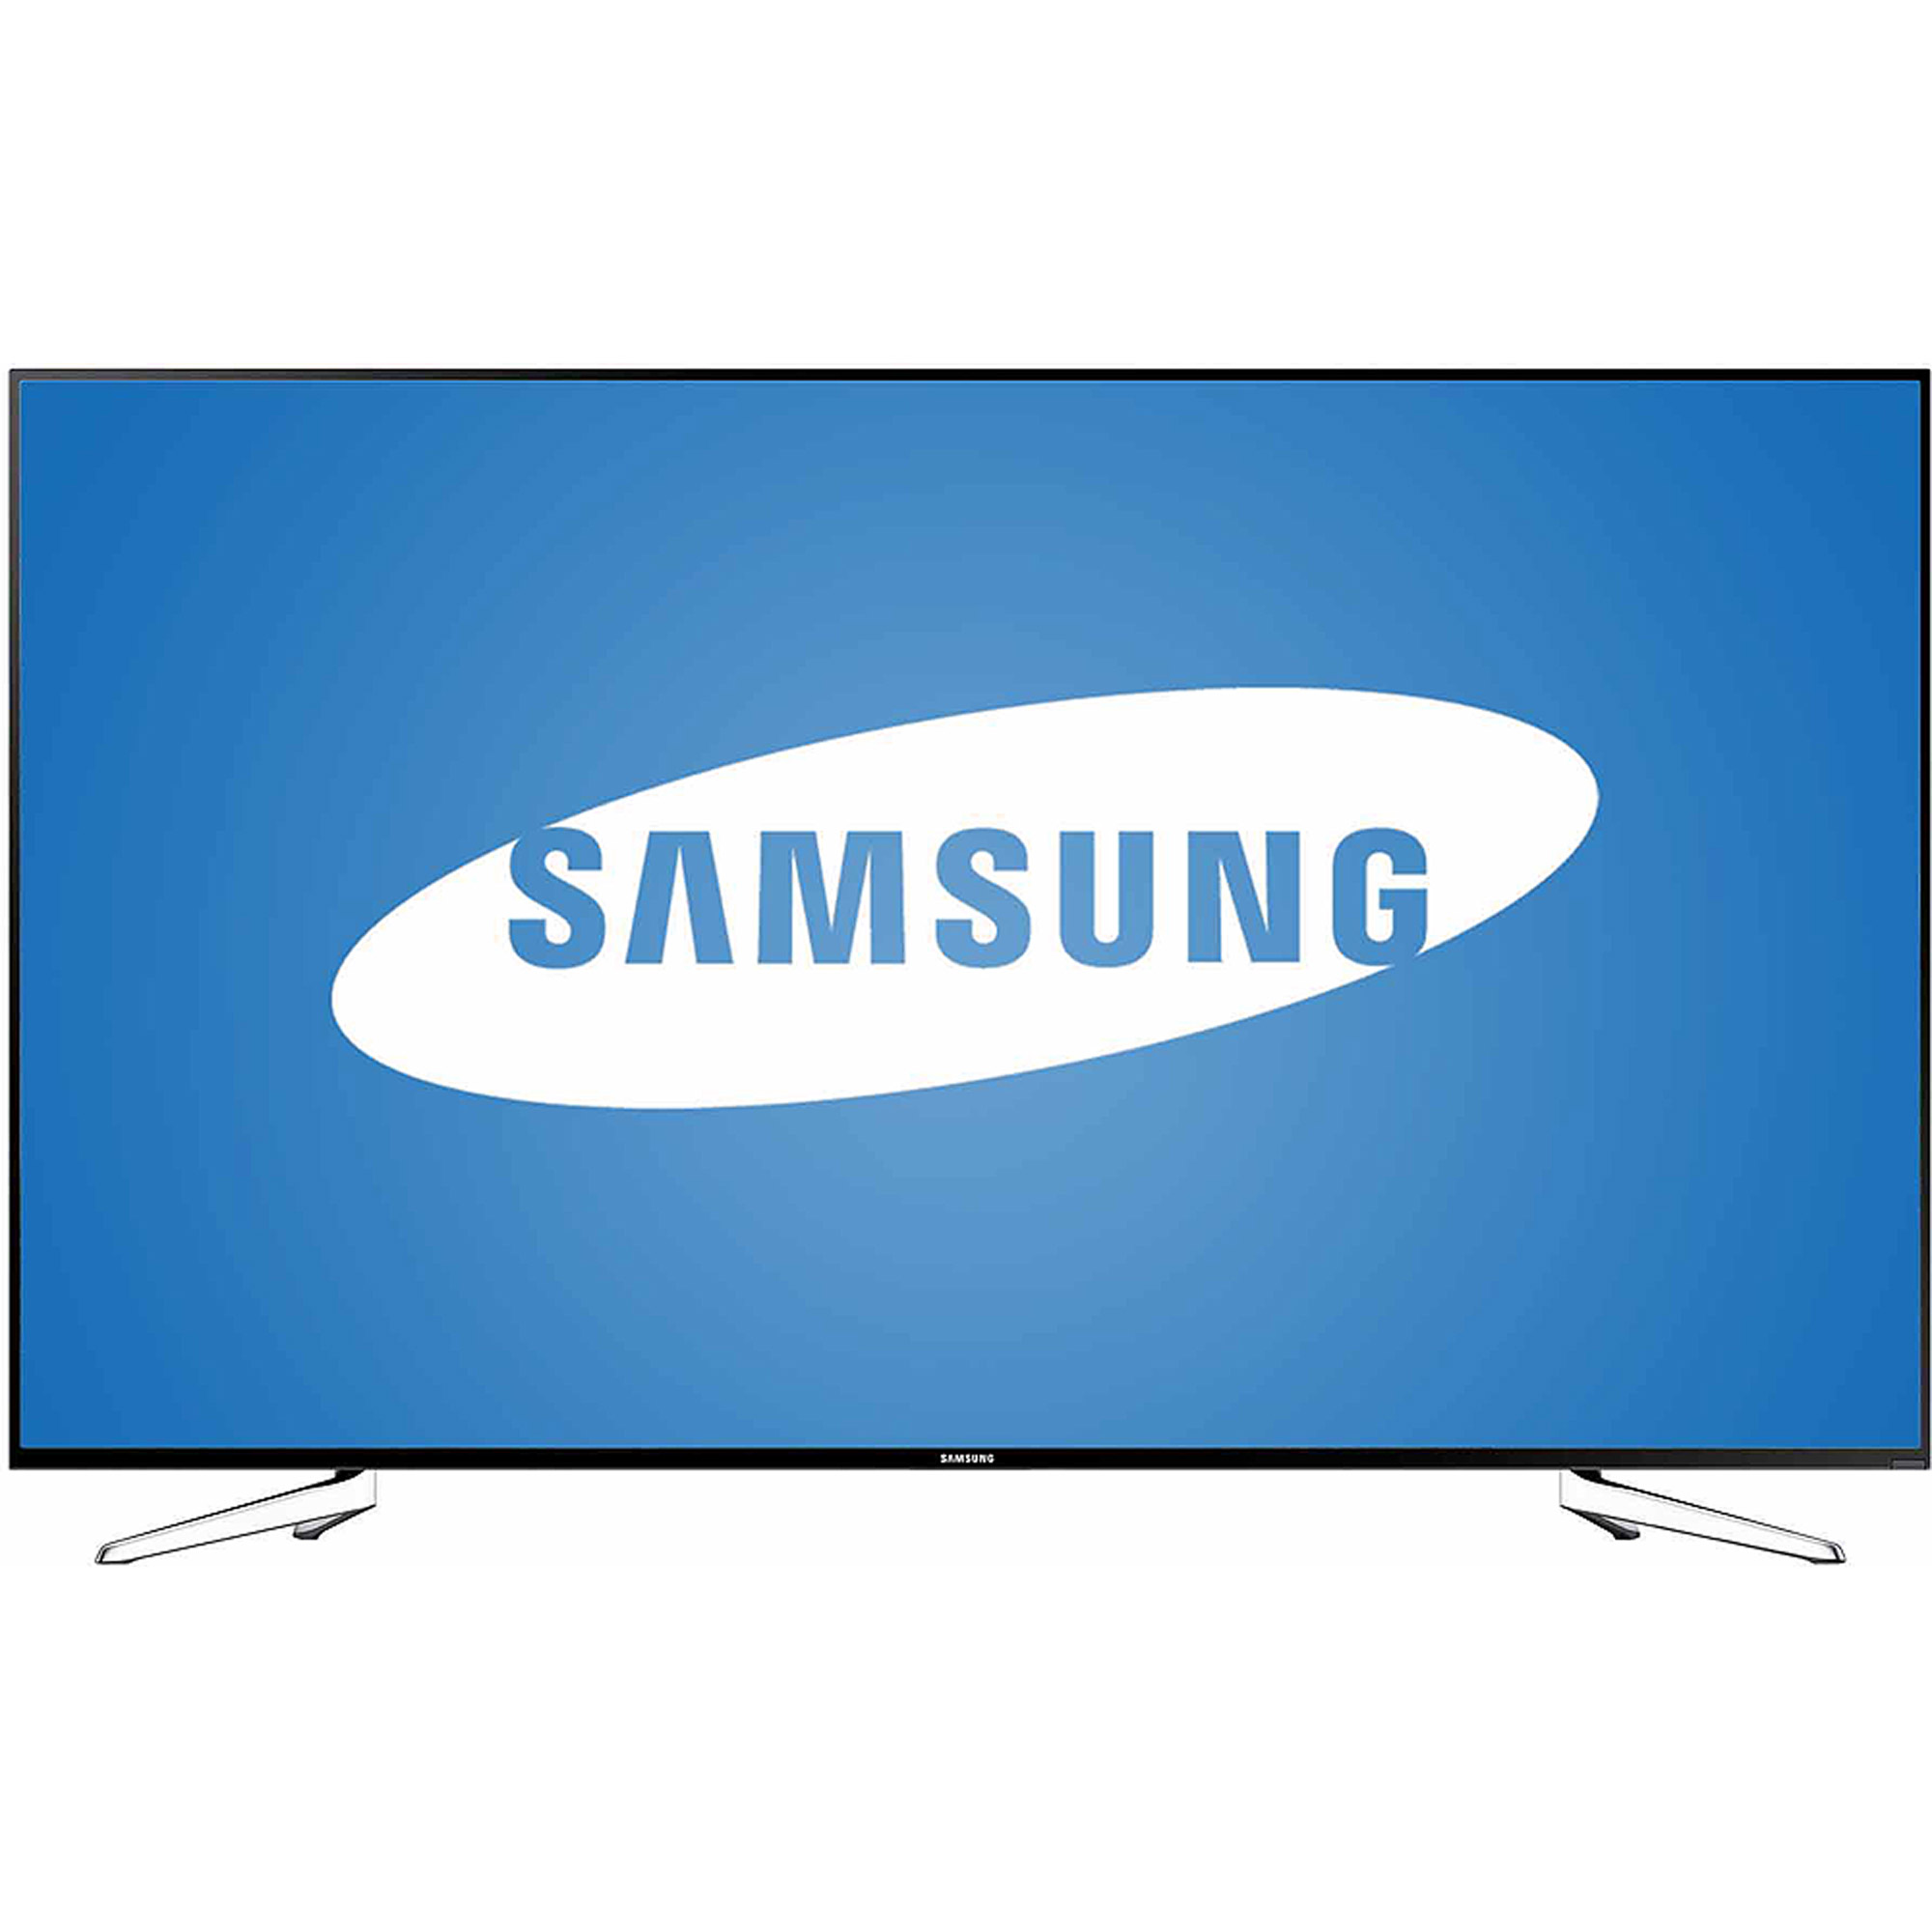 "SAMSUNG 75"" 6300 Series - Full HD Smart LED TV - 1080p, 120MR (Model#: UN75J6300)"